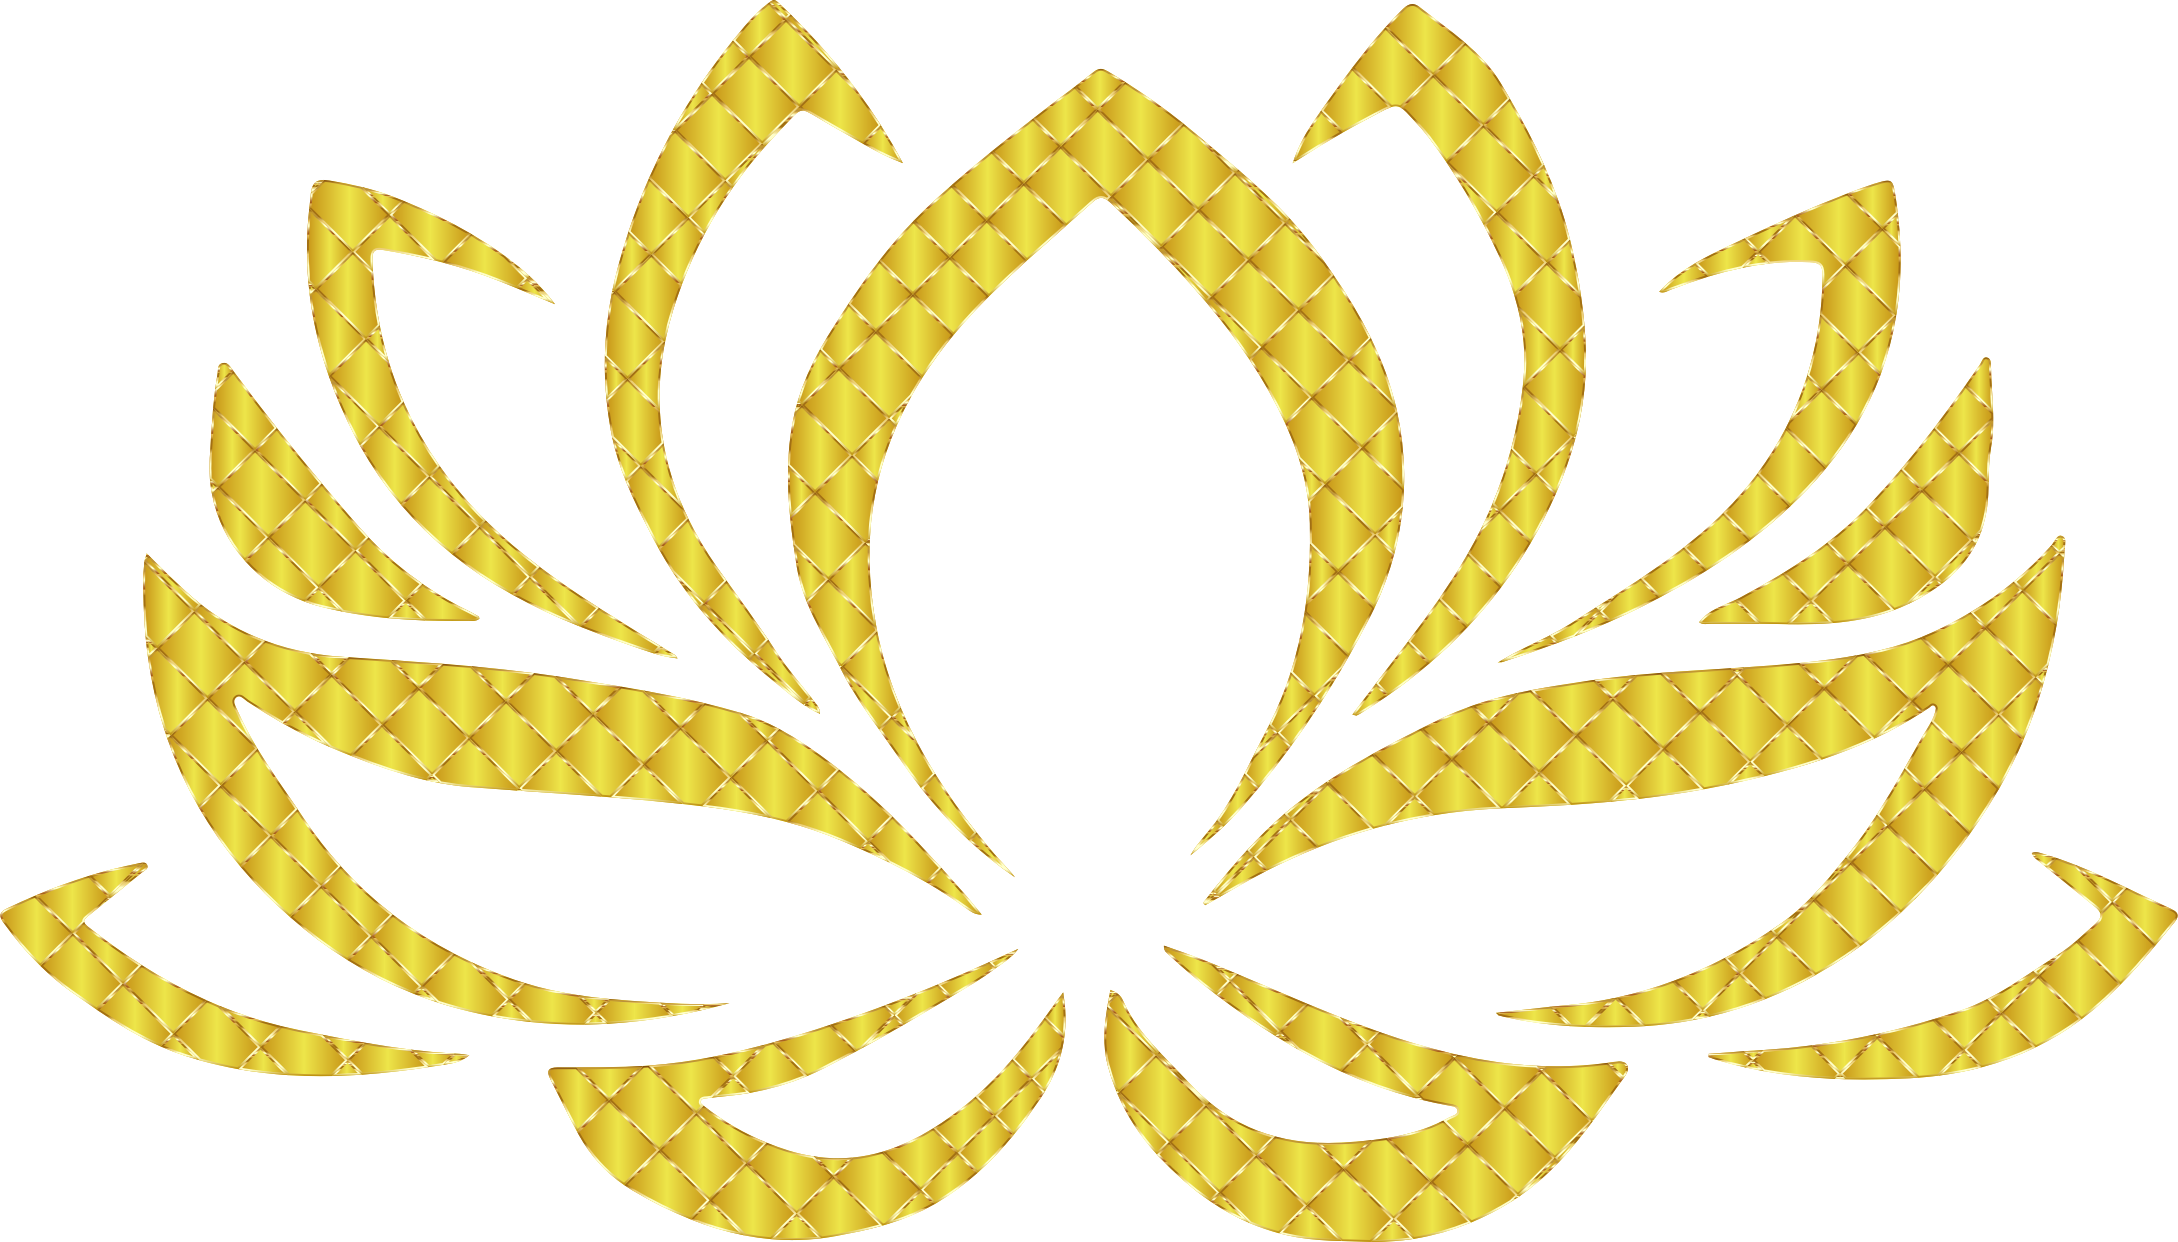 Number 4 clipart gold. Golden lotus flower no